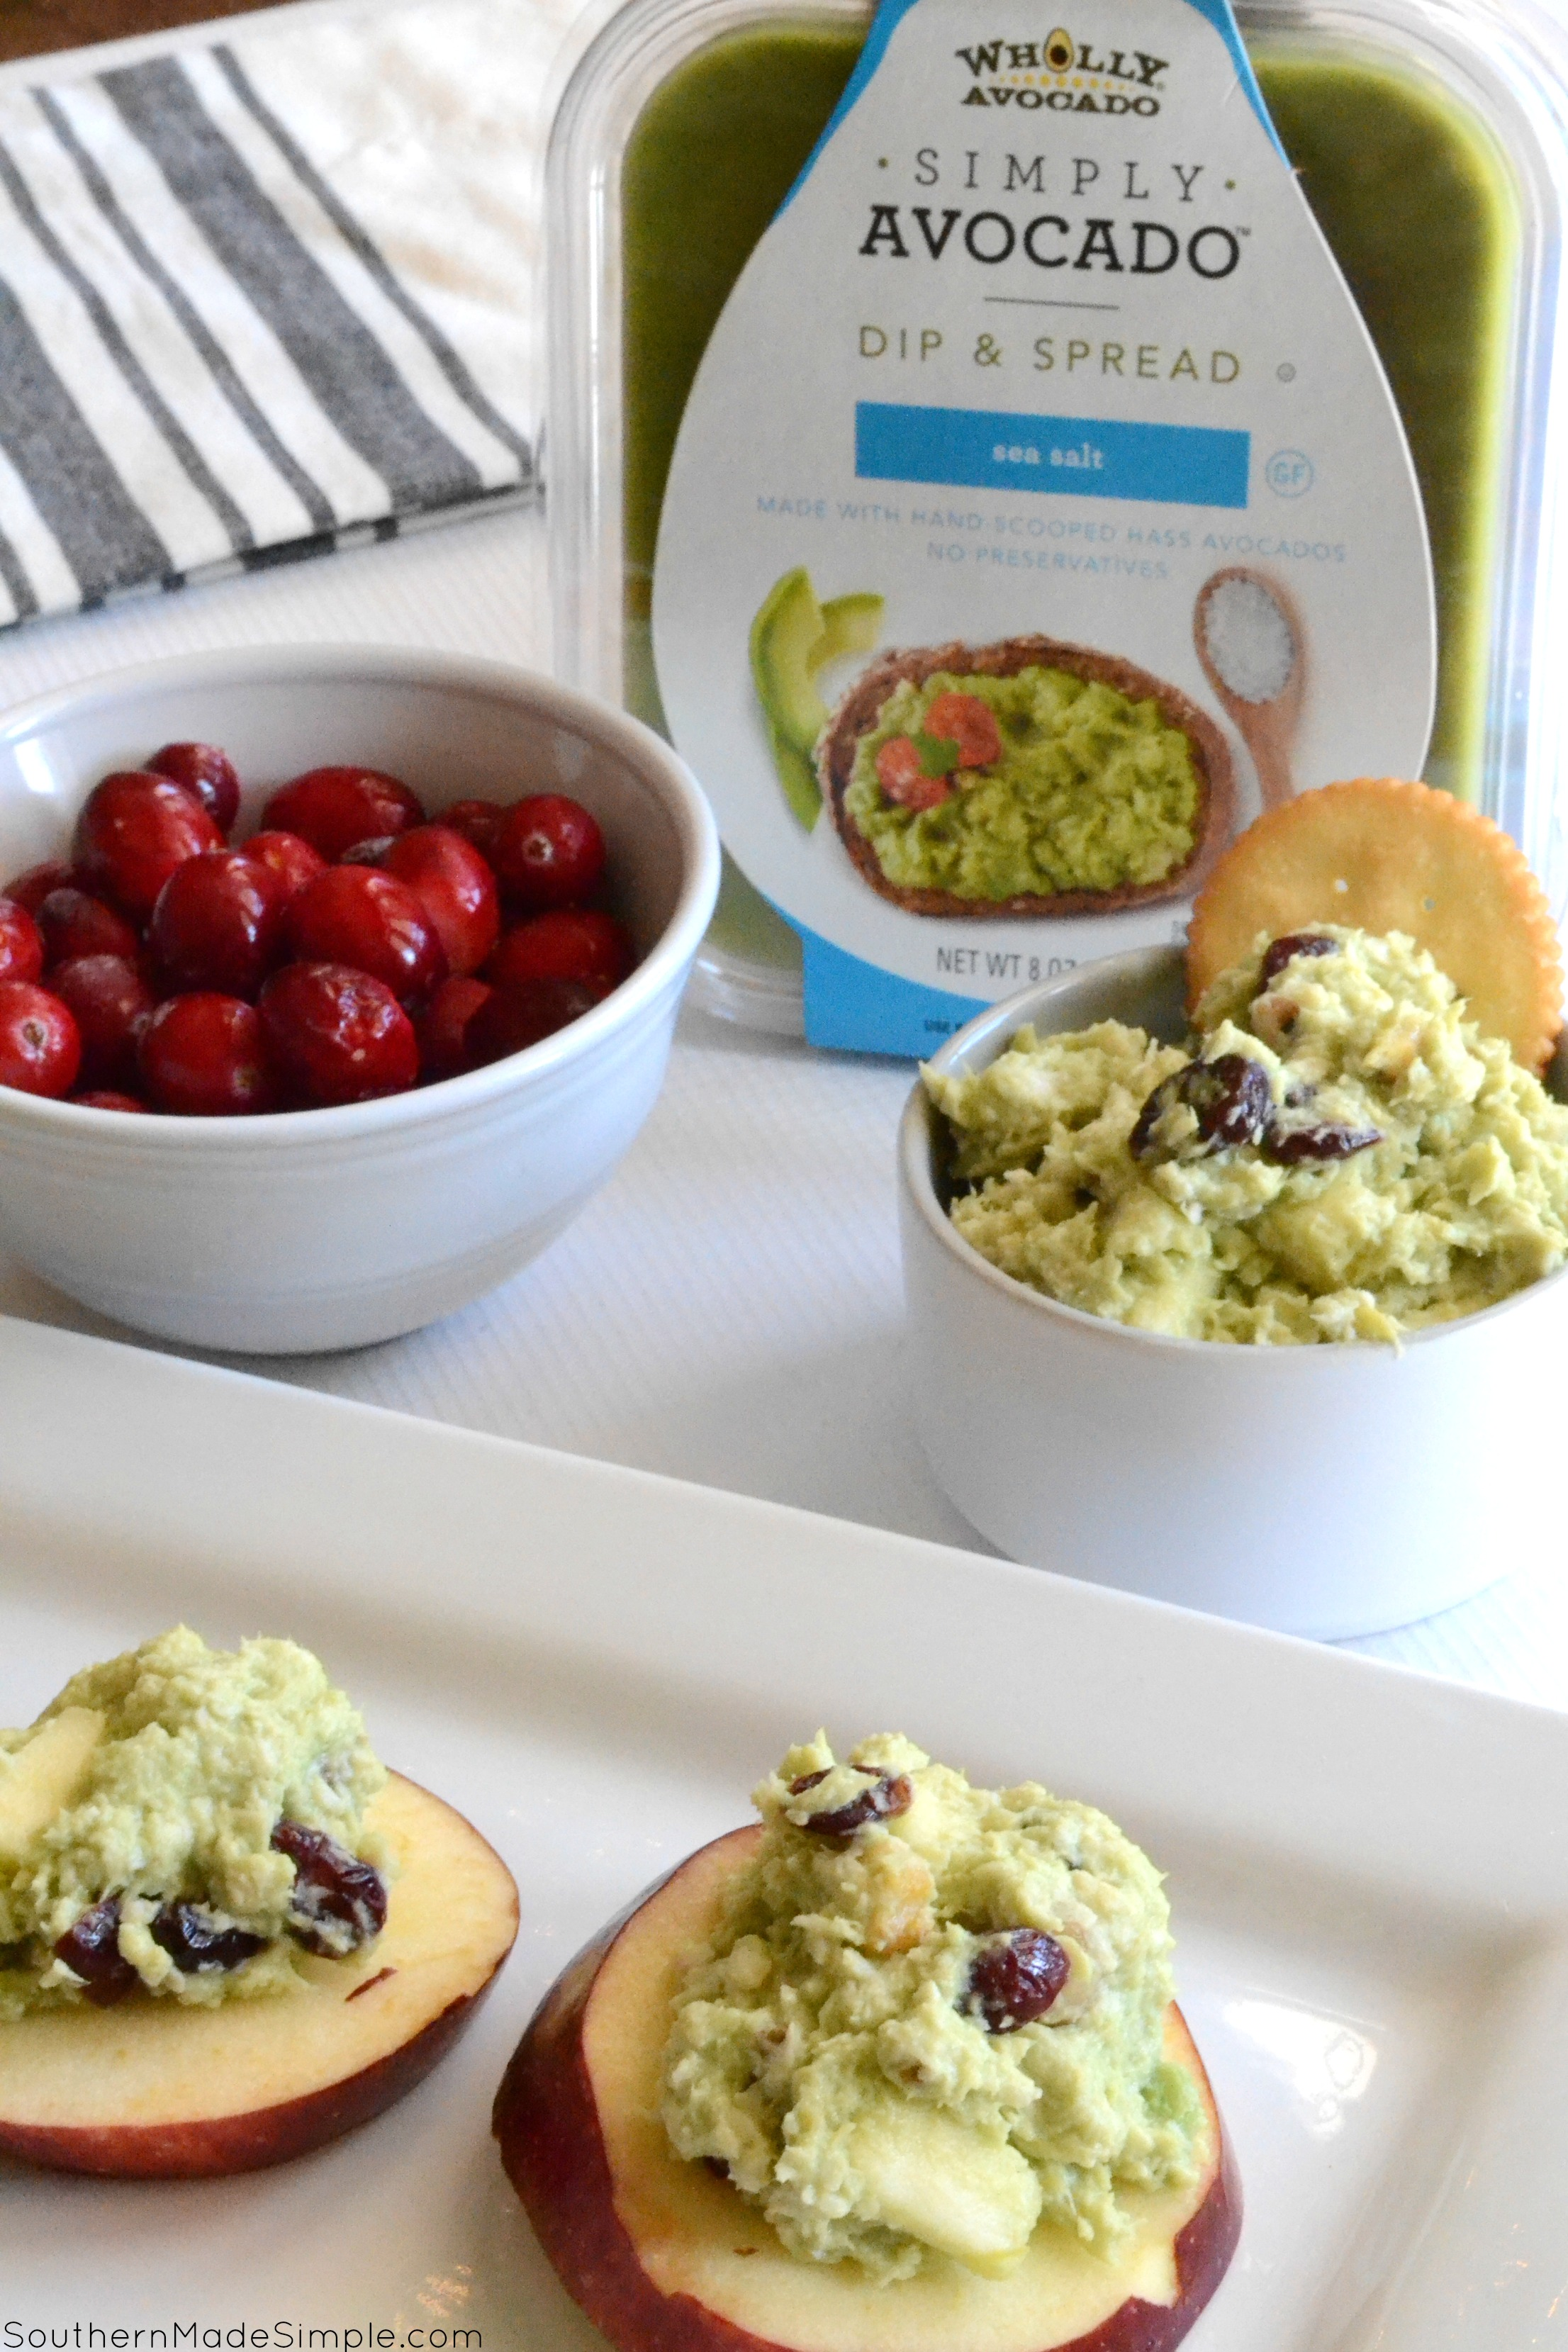 Need a quick and easy mid-day snack or a simple lunch on the go packed with goodness? This recipe for Cranberry-Avocado Chicken Salad is light, delicious and can come together in just a few minutes! Serve it on apple slices, with crackers, in a tortilla or on bread, the possibilities are endless! #SimplyAvocado #Ad